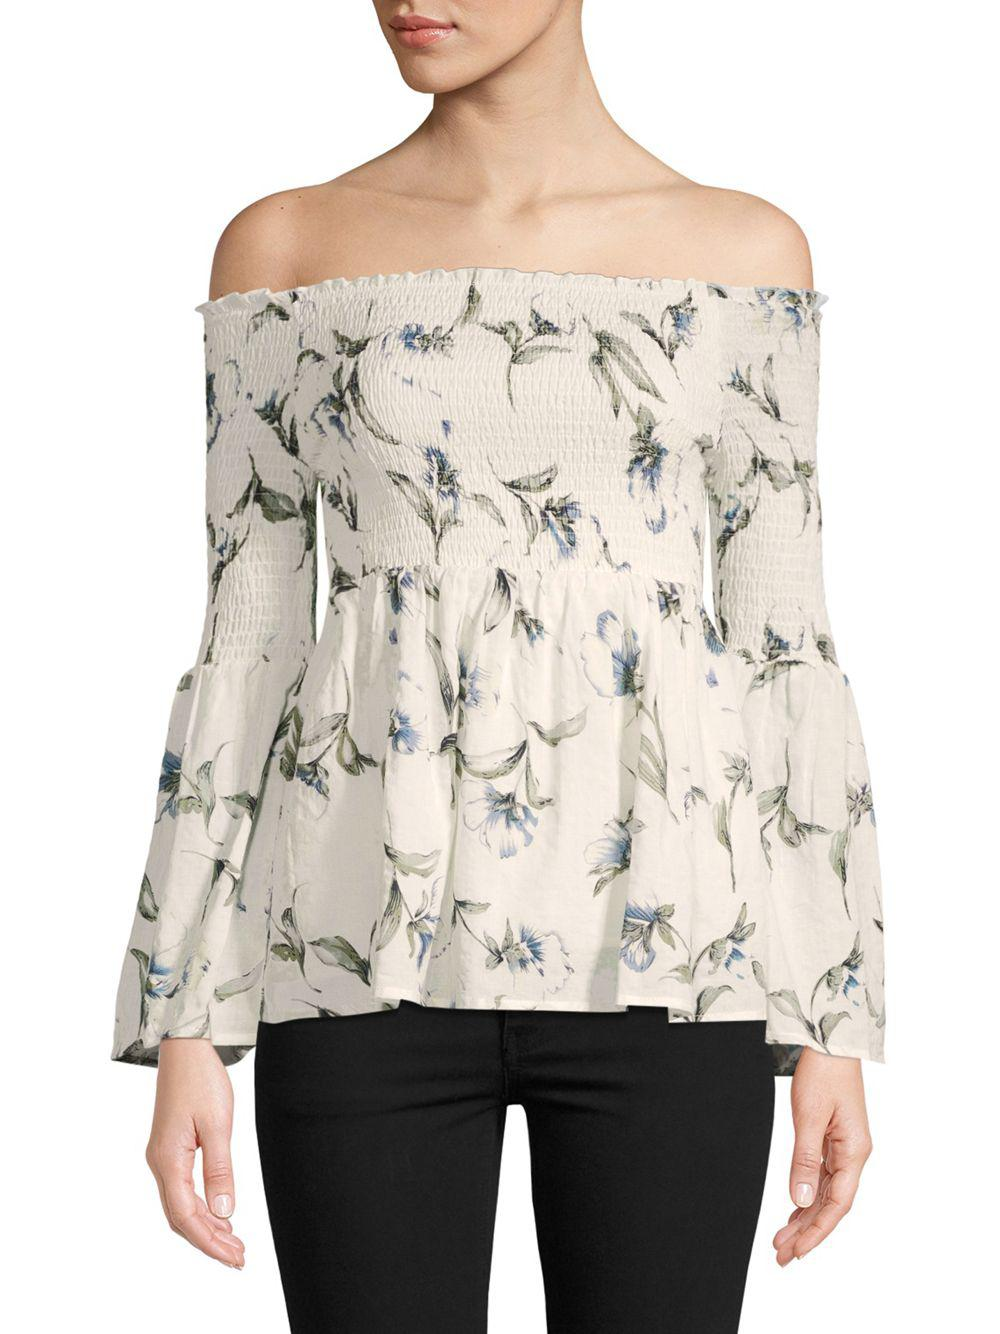 Lyst - Lucca Couture Eden Floral Off-the-shoulder Top - Save 49% cca6c81d2